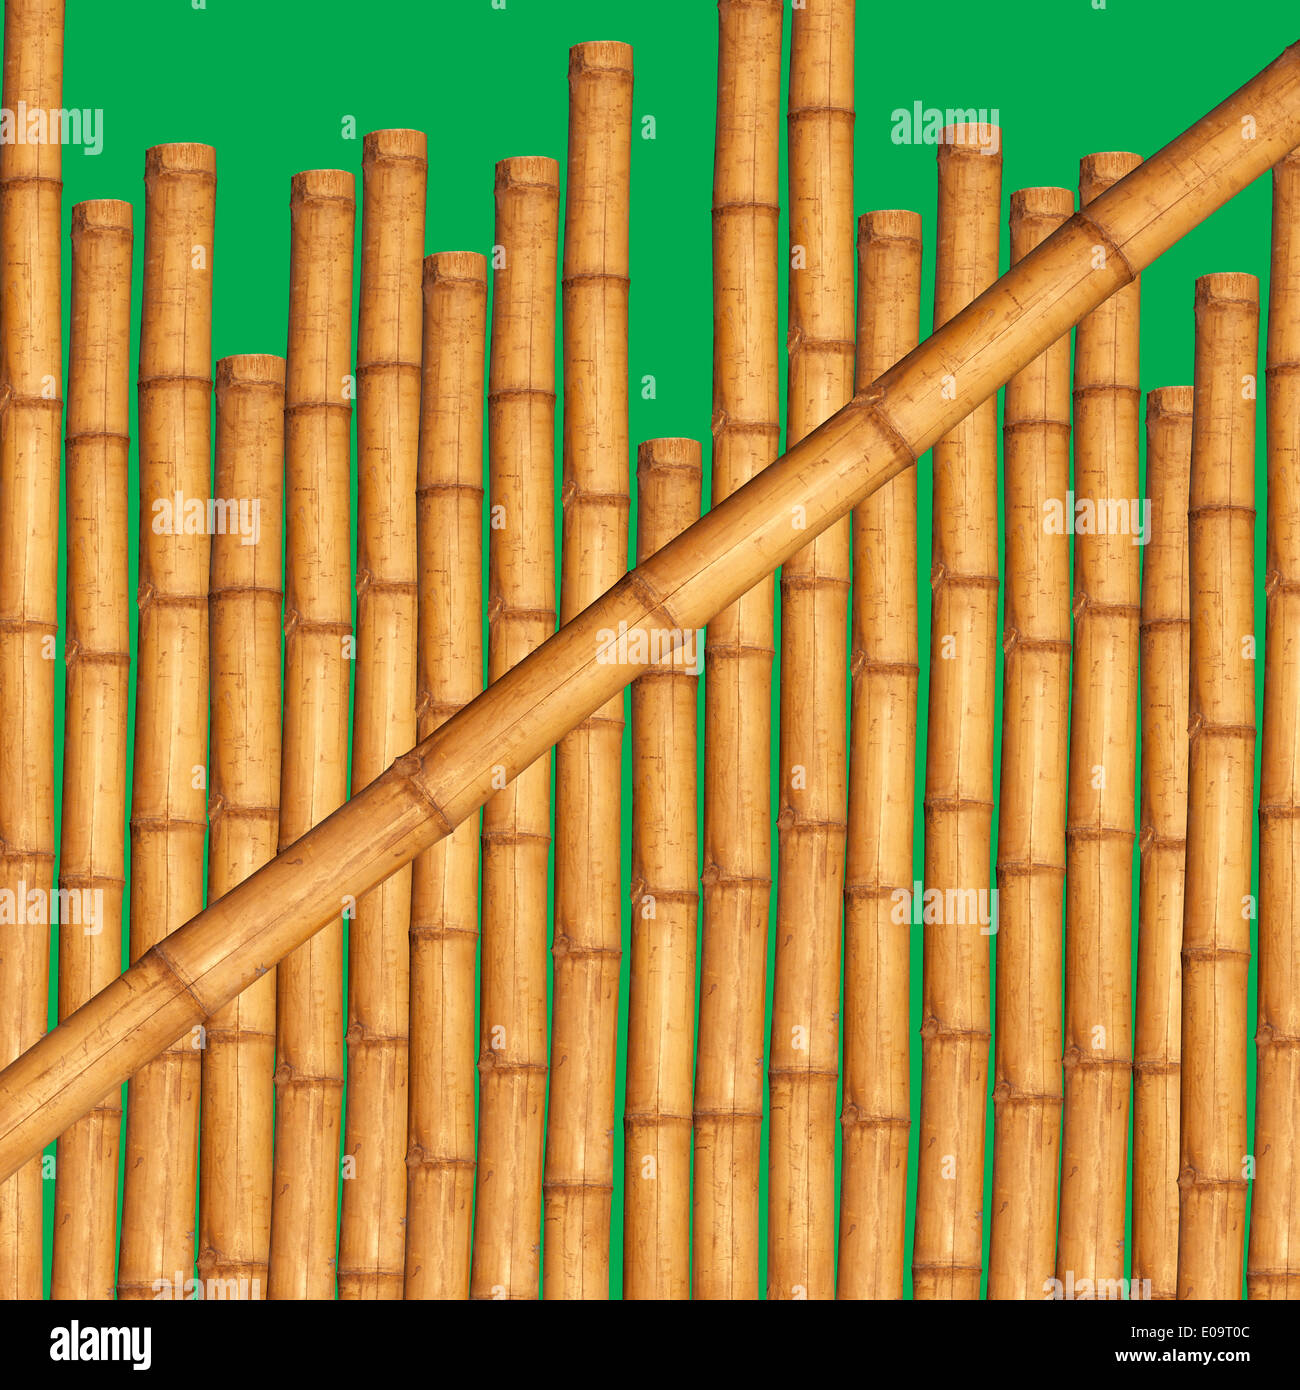 Bamboo sticks in front of green background Stock Photo